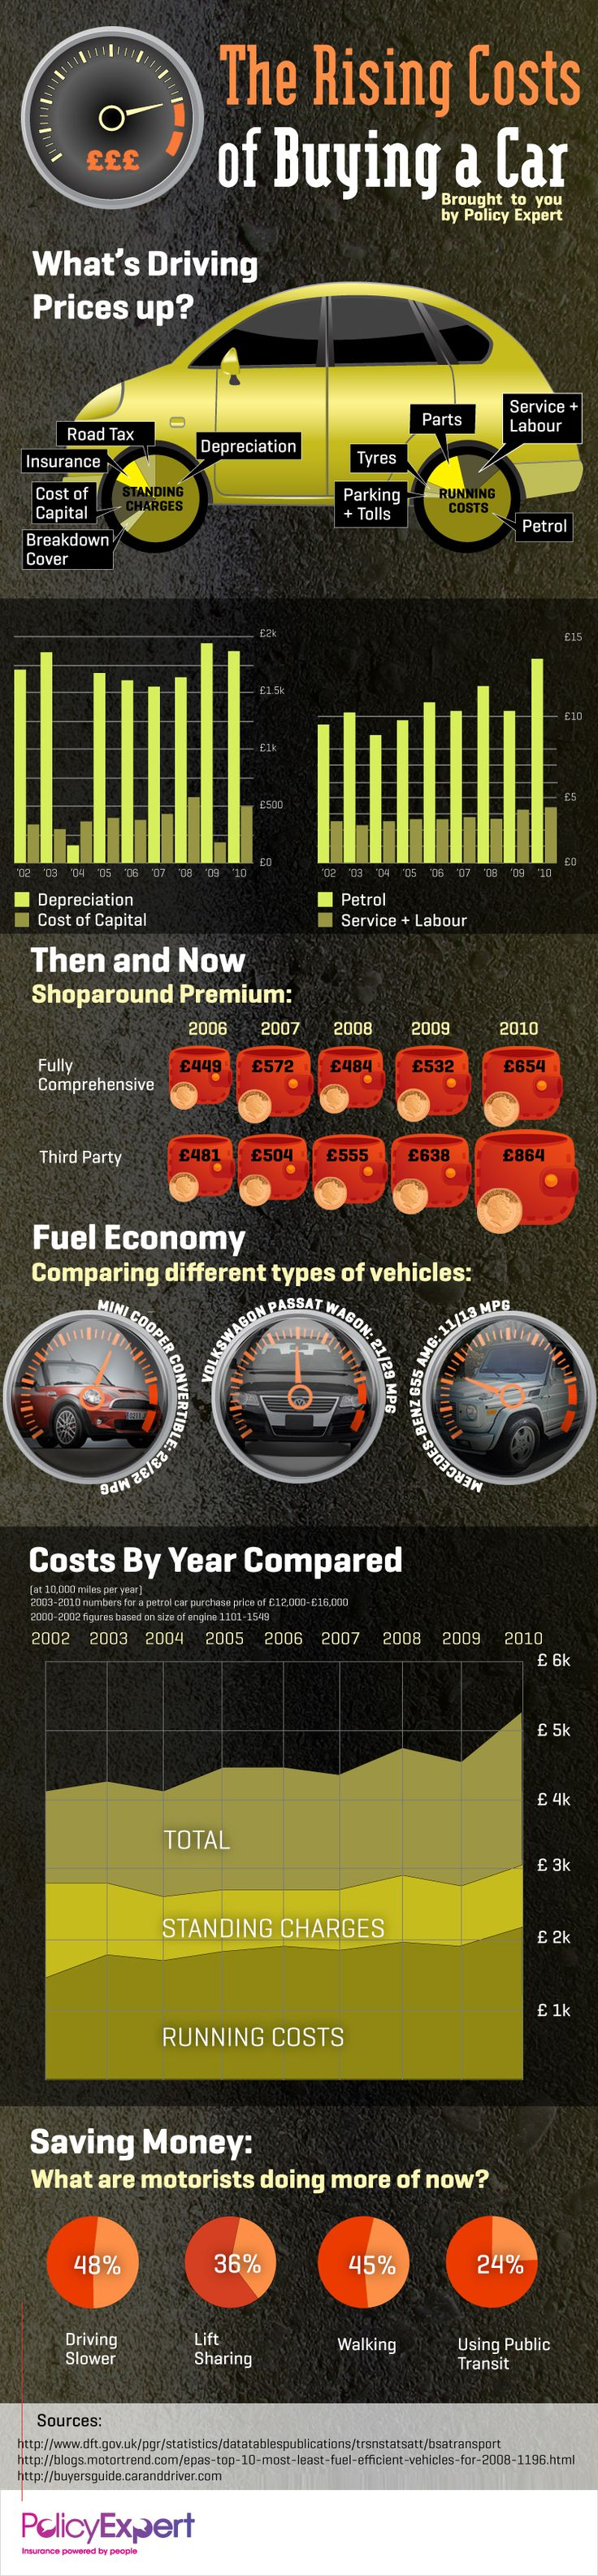 The rising cost of buying your first car infographic is one of the best infographics created in the category check out the rising cost of buying your first